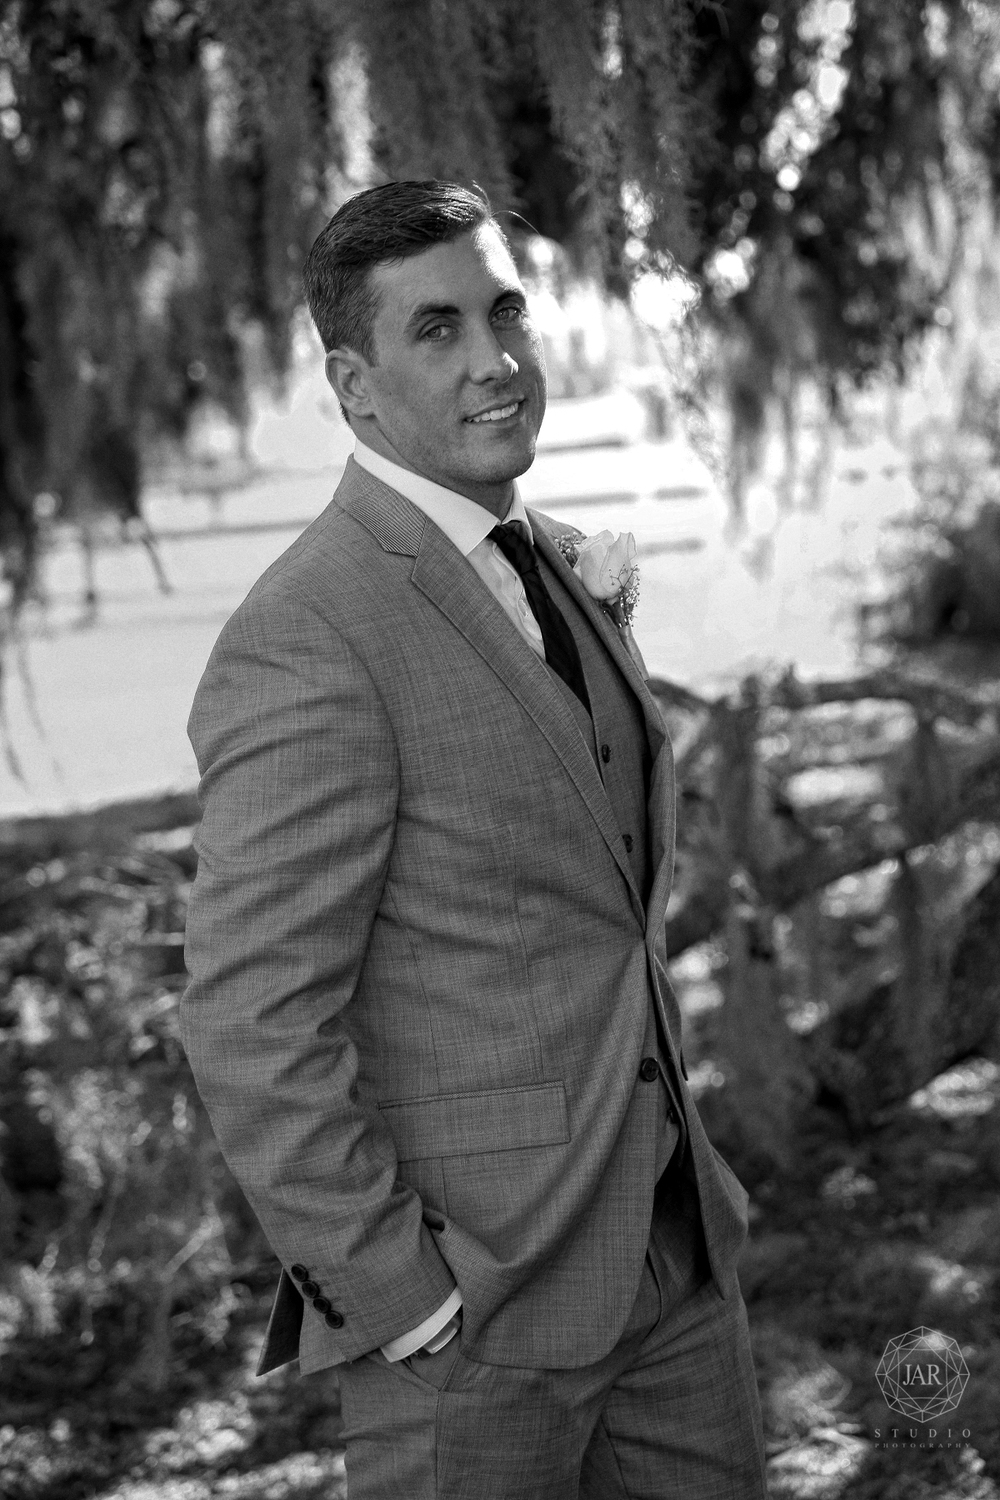 03-grey-tuxedo-groom-wedding-park-jarstudio.JPG